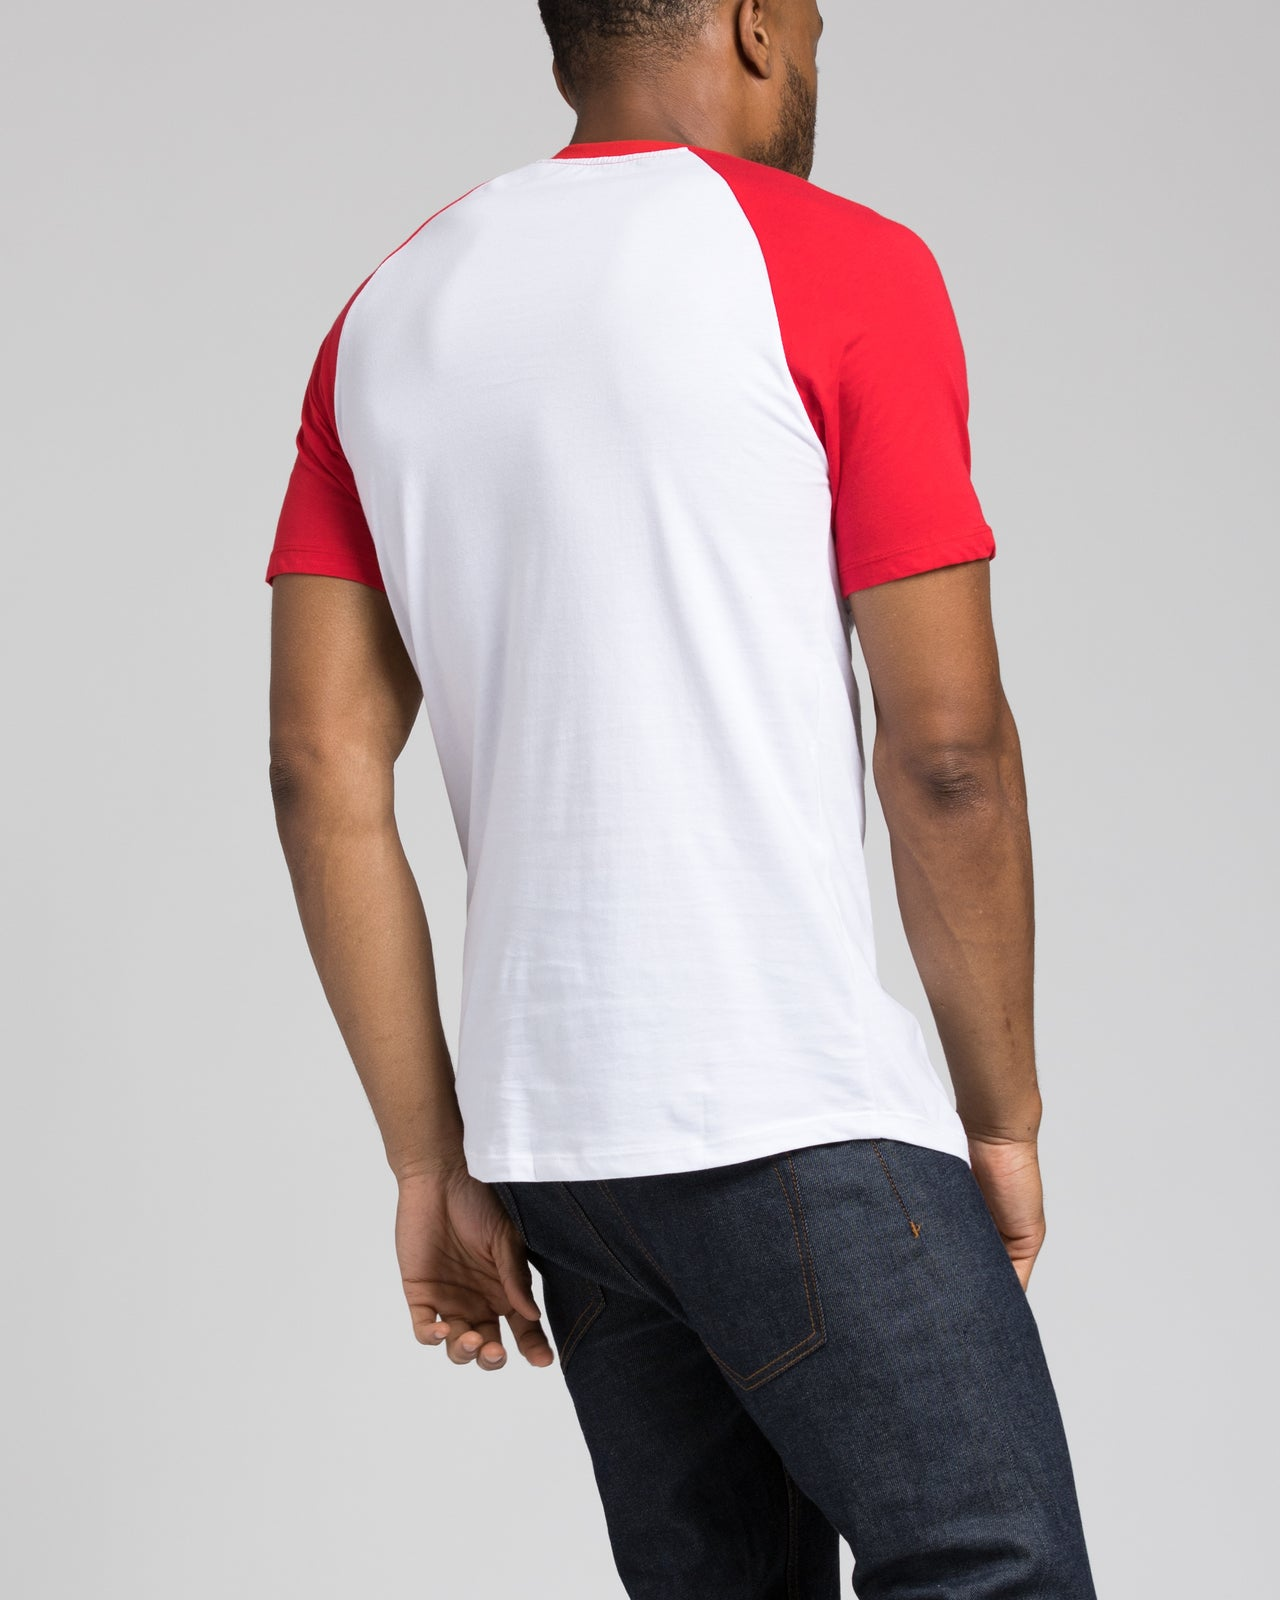 Short Sleeve Henley - Color: Red/White | White